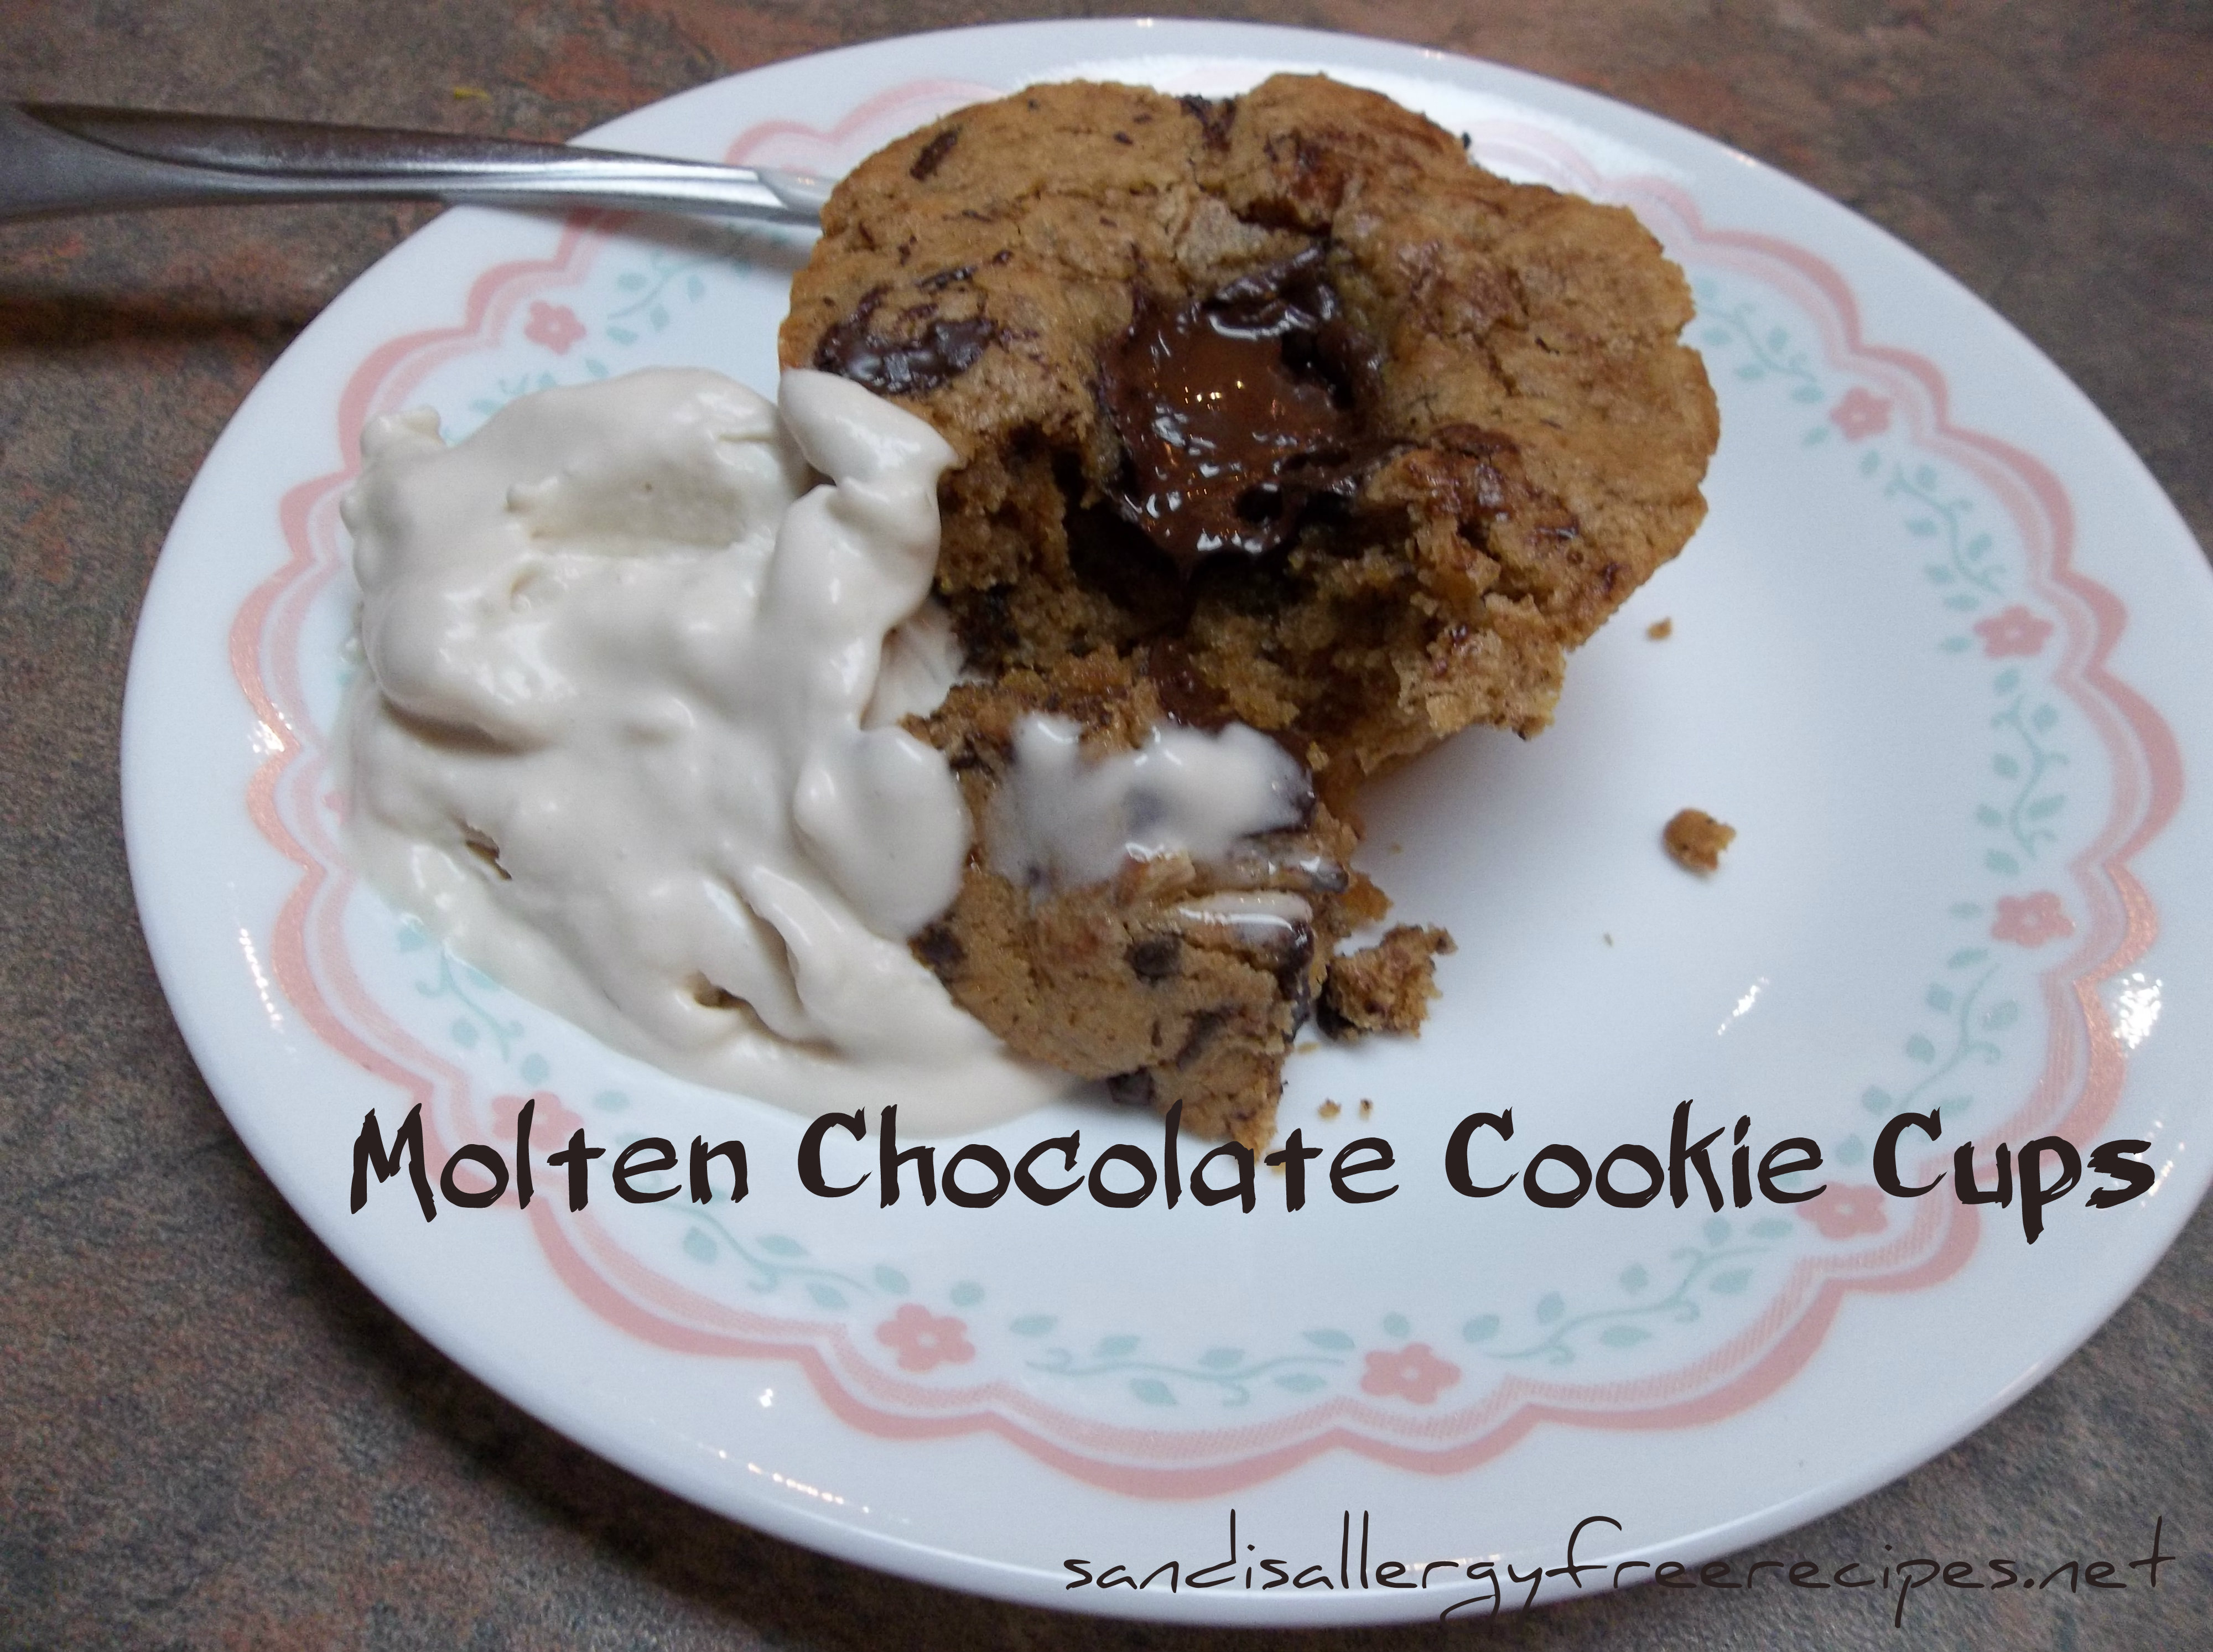 Molten Chocolate Cookie Cups